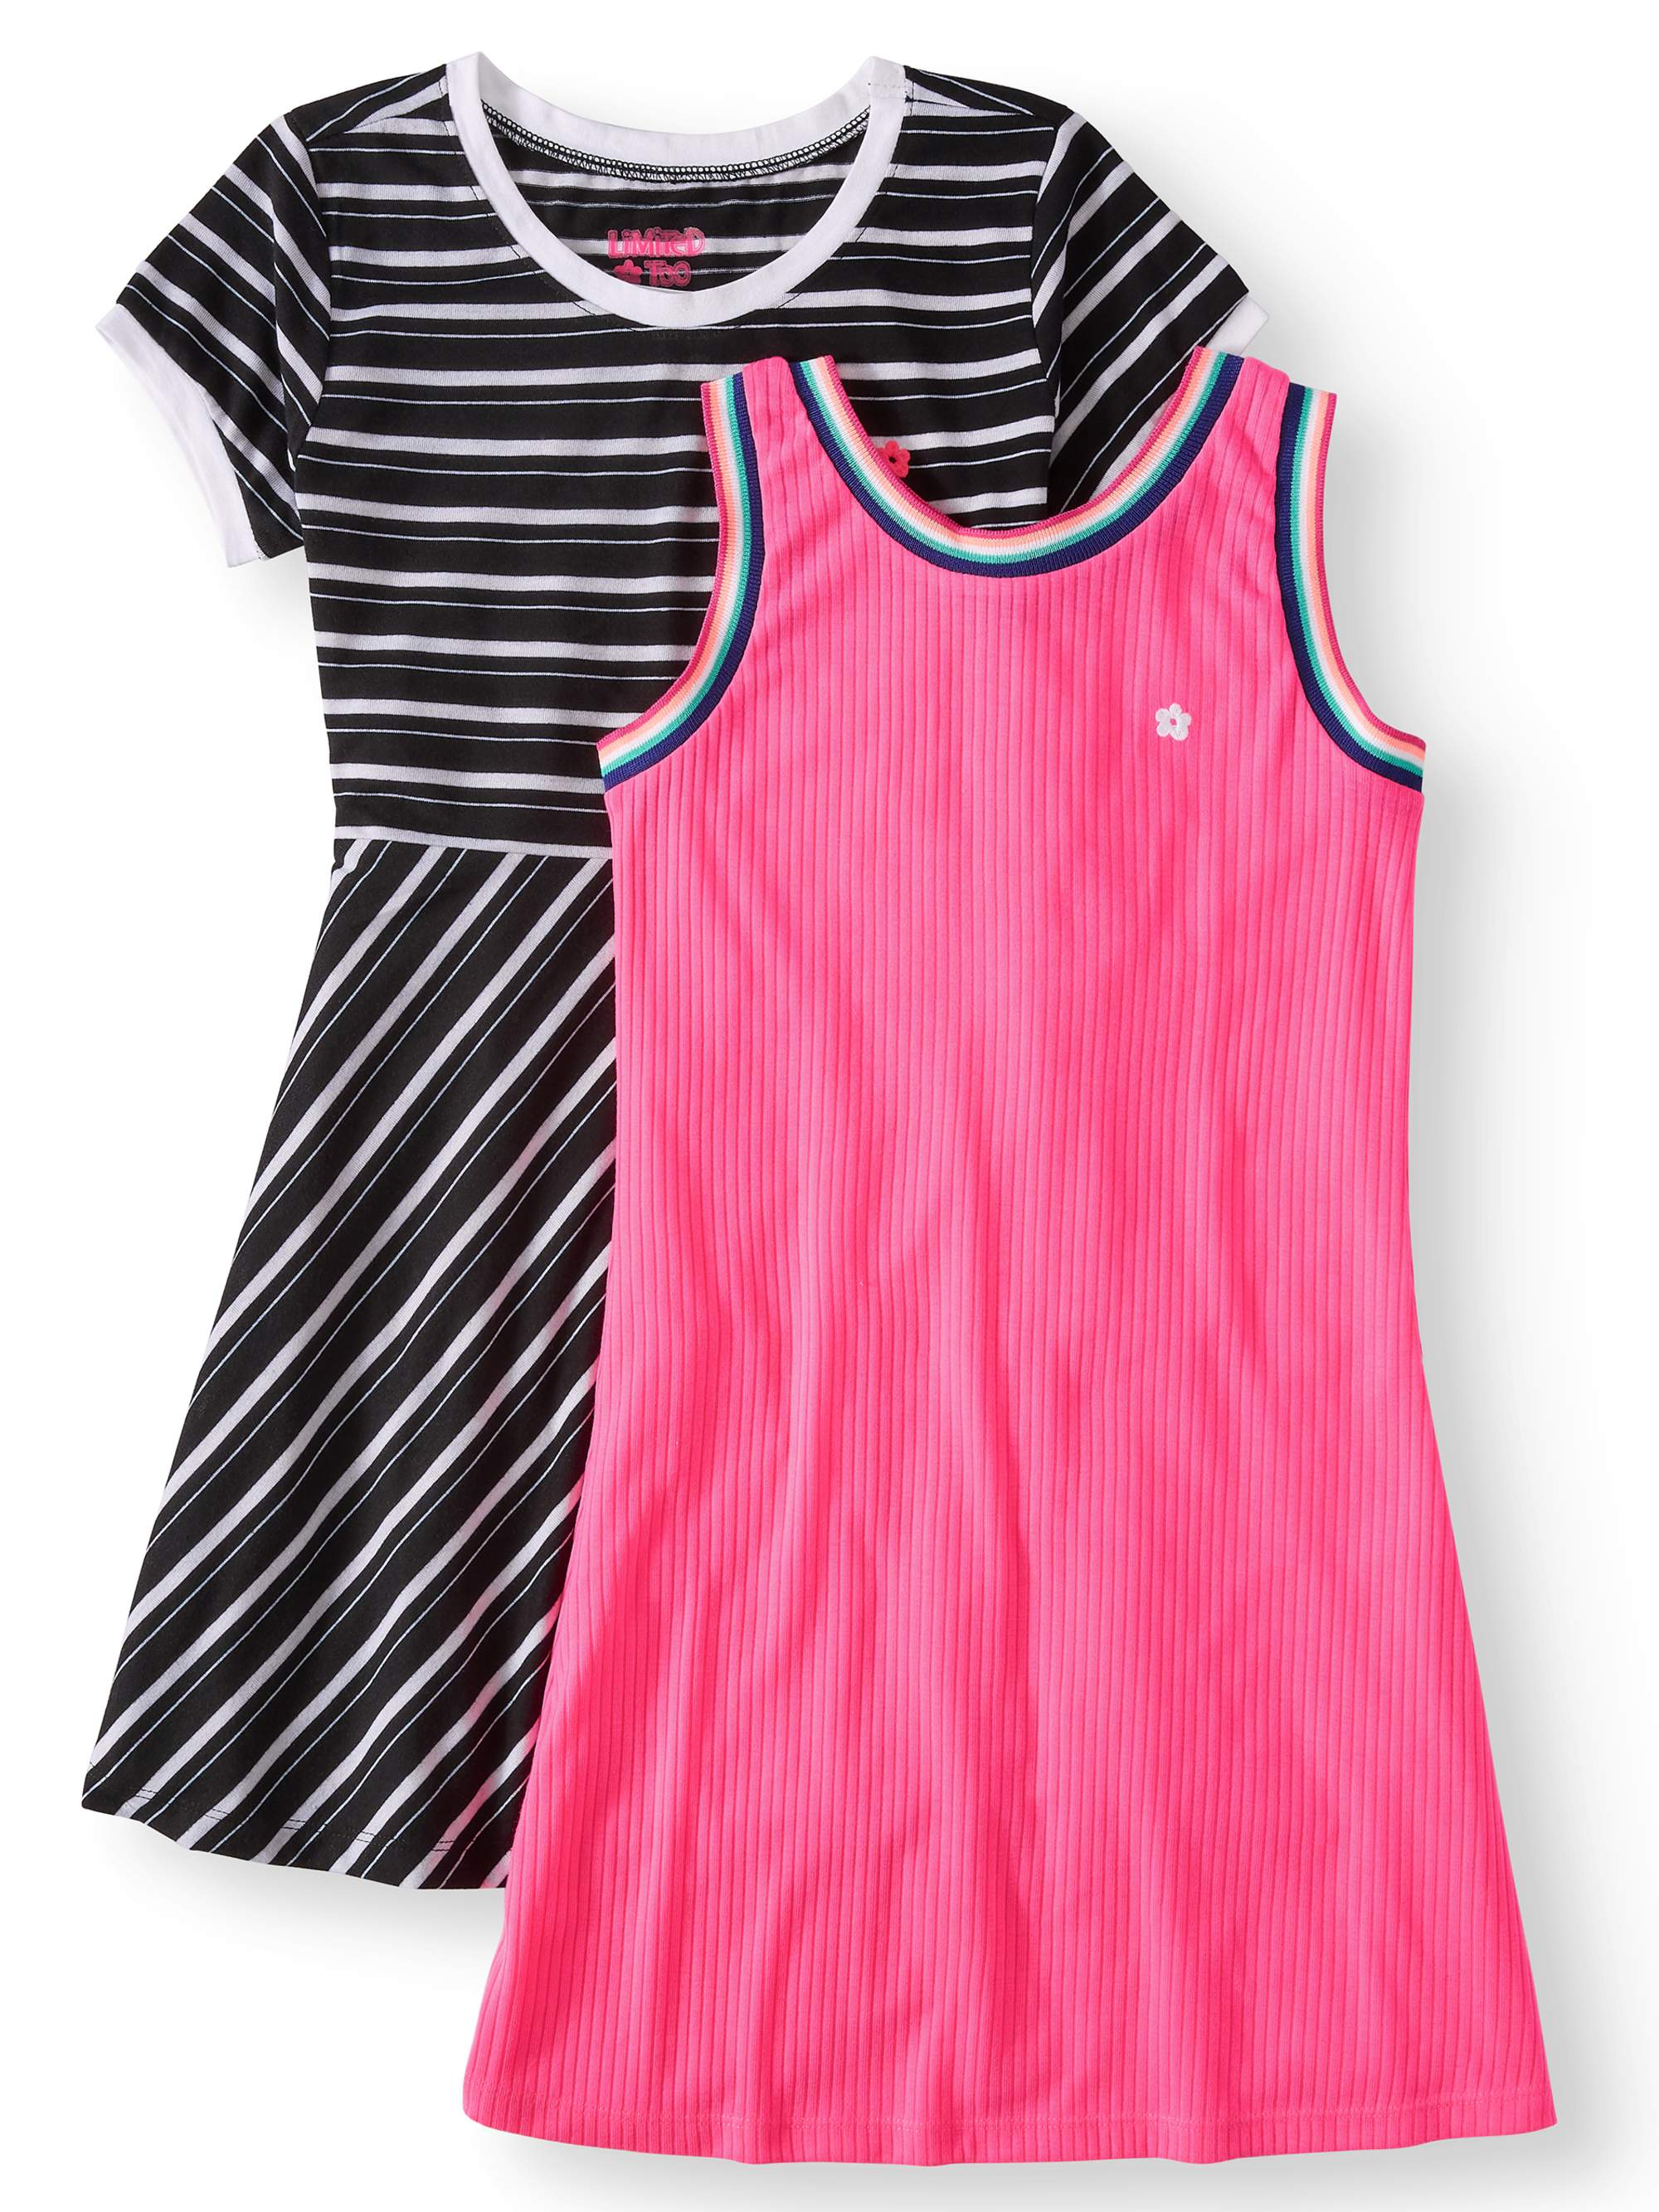 Big Girls' Striped Tee and Ribbed Tank Dresses (2-Pack)